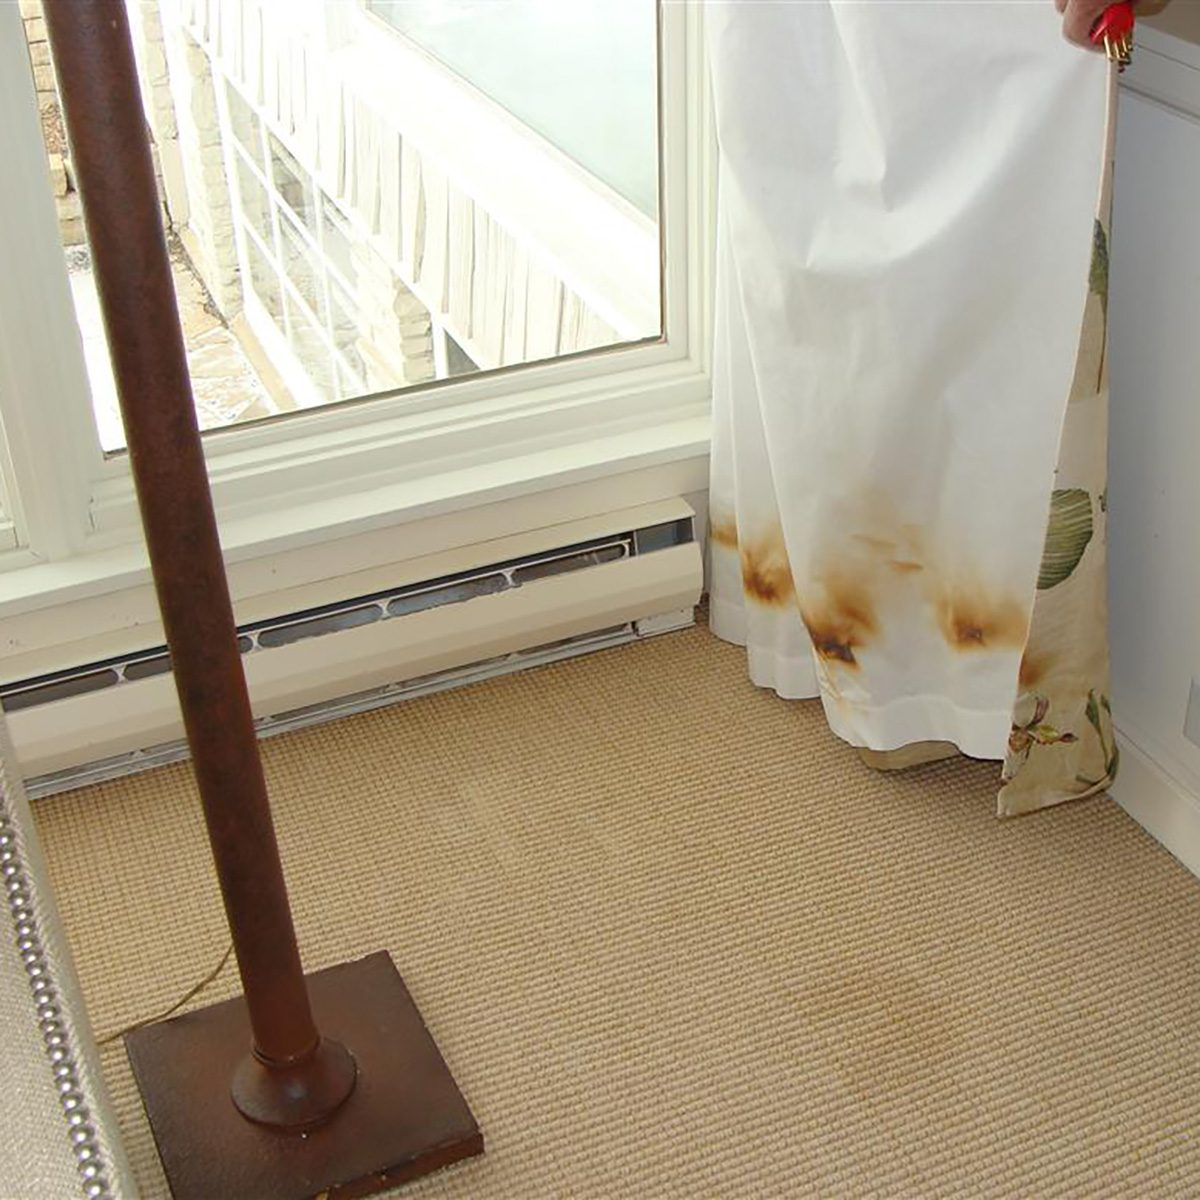 Singed curtains sitting too close to heater   Construction Pro Tips